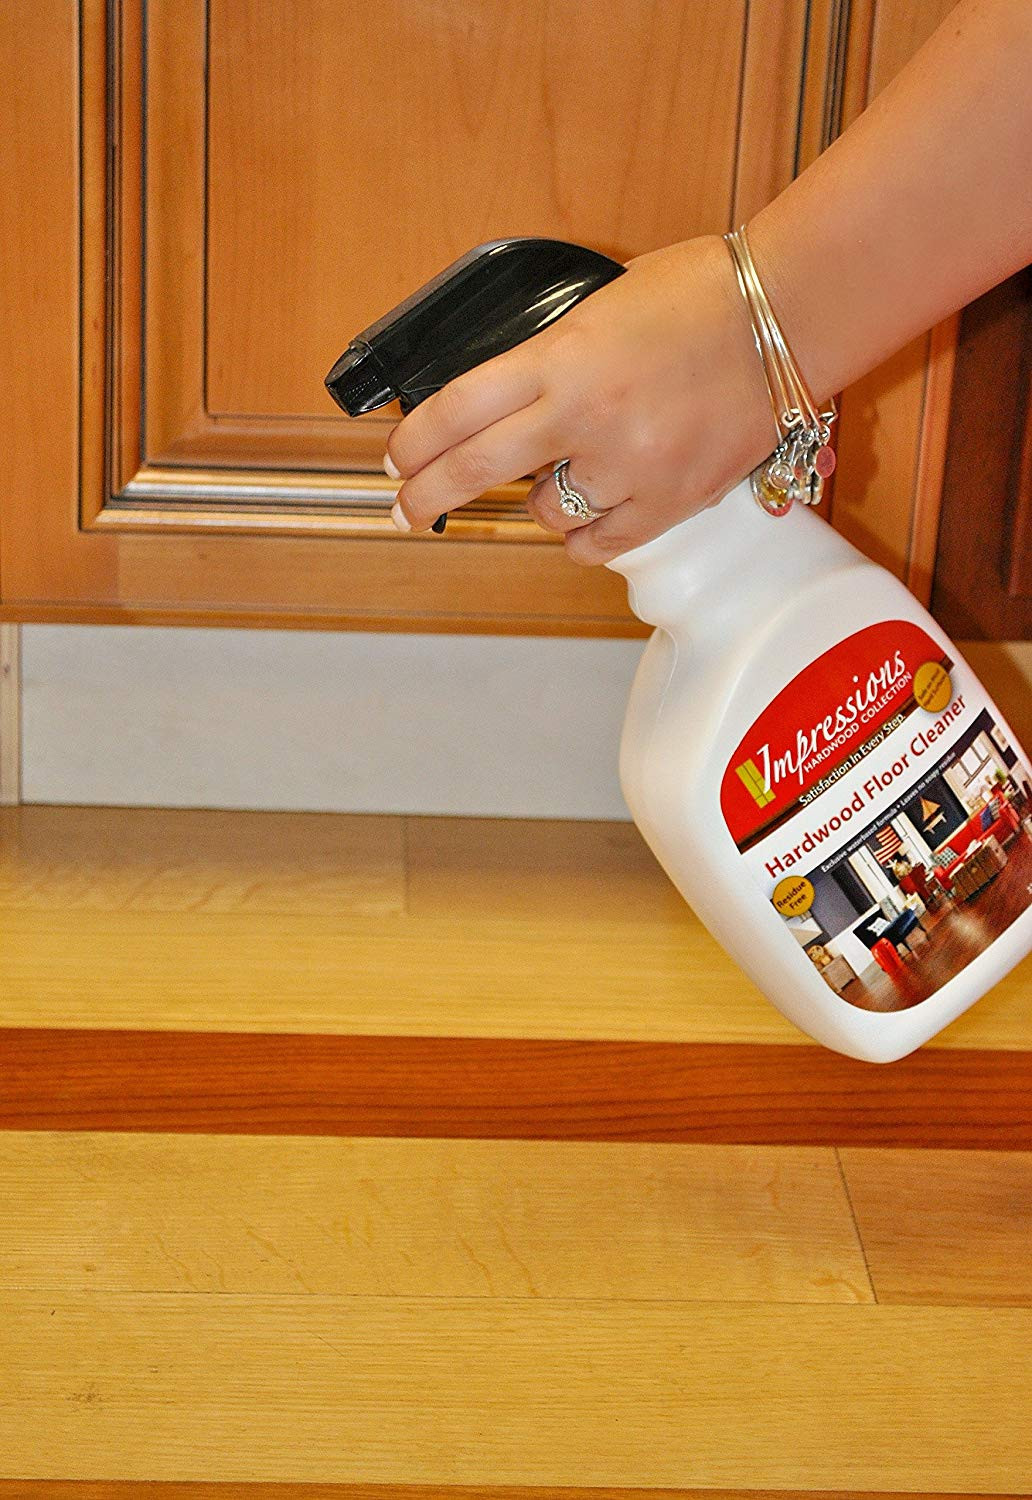 hardwood floor cleaner no residue of amazon com impressions hardwood floor cleaner home kitchen throughout a1e0rlj5rdl sl1500